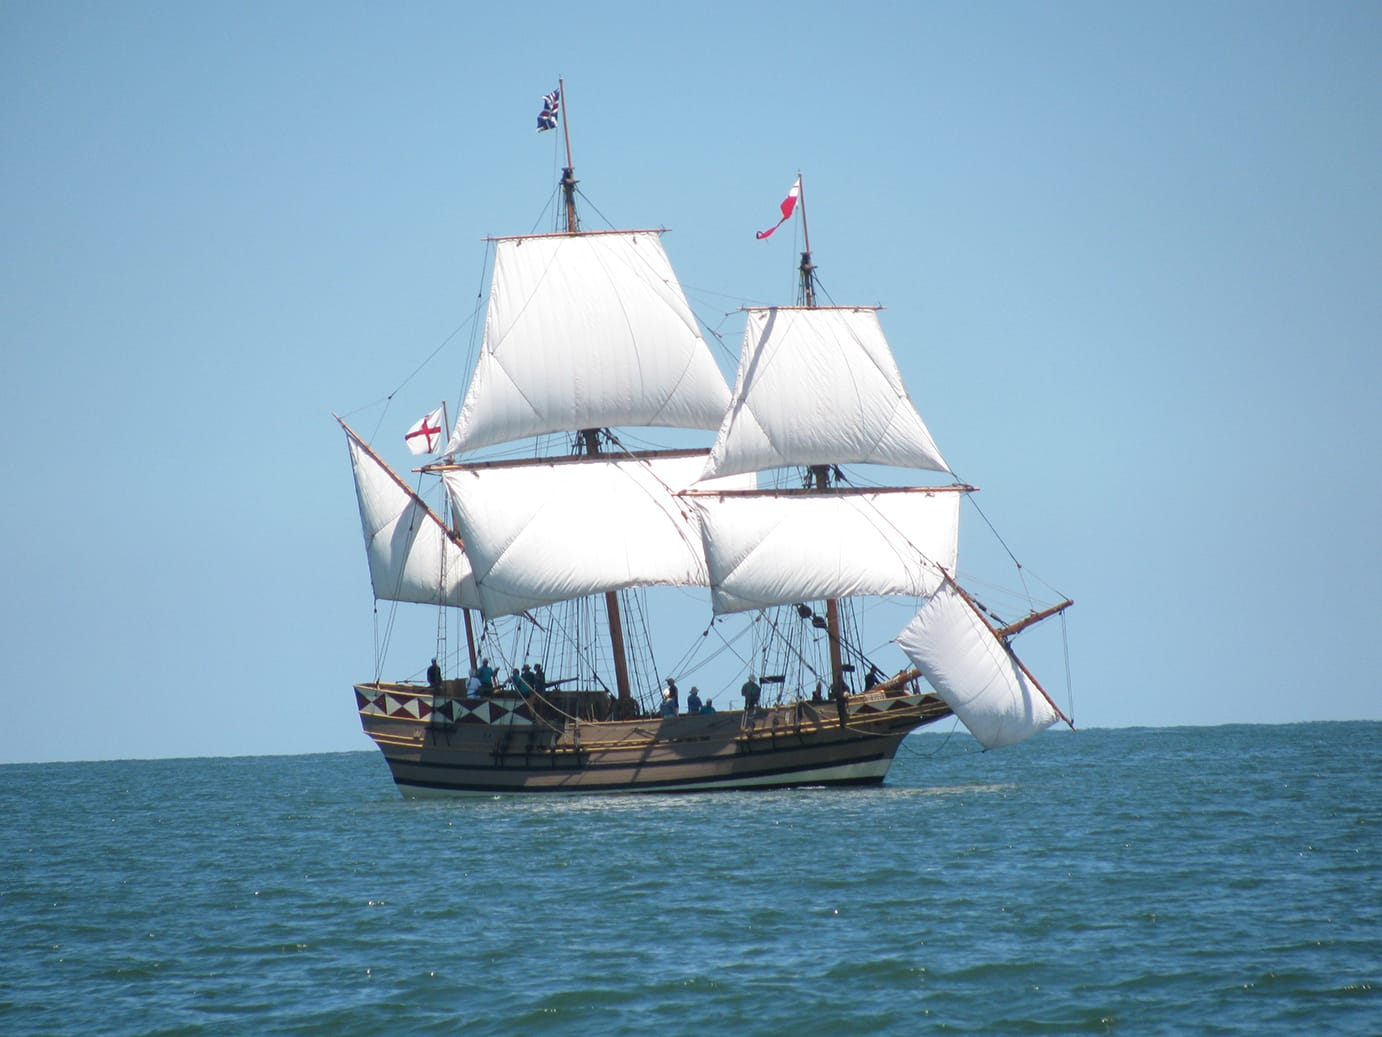 godspeed-this-is-a-replica-of-the-ships-that-brouht-our-ancestors-to-jamestown-in-1607.jpg